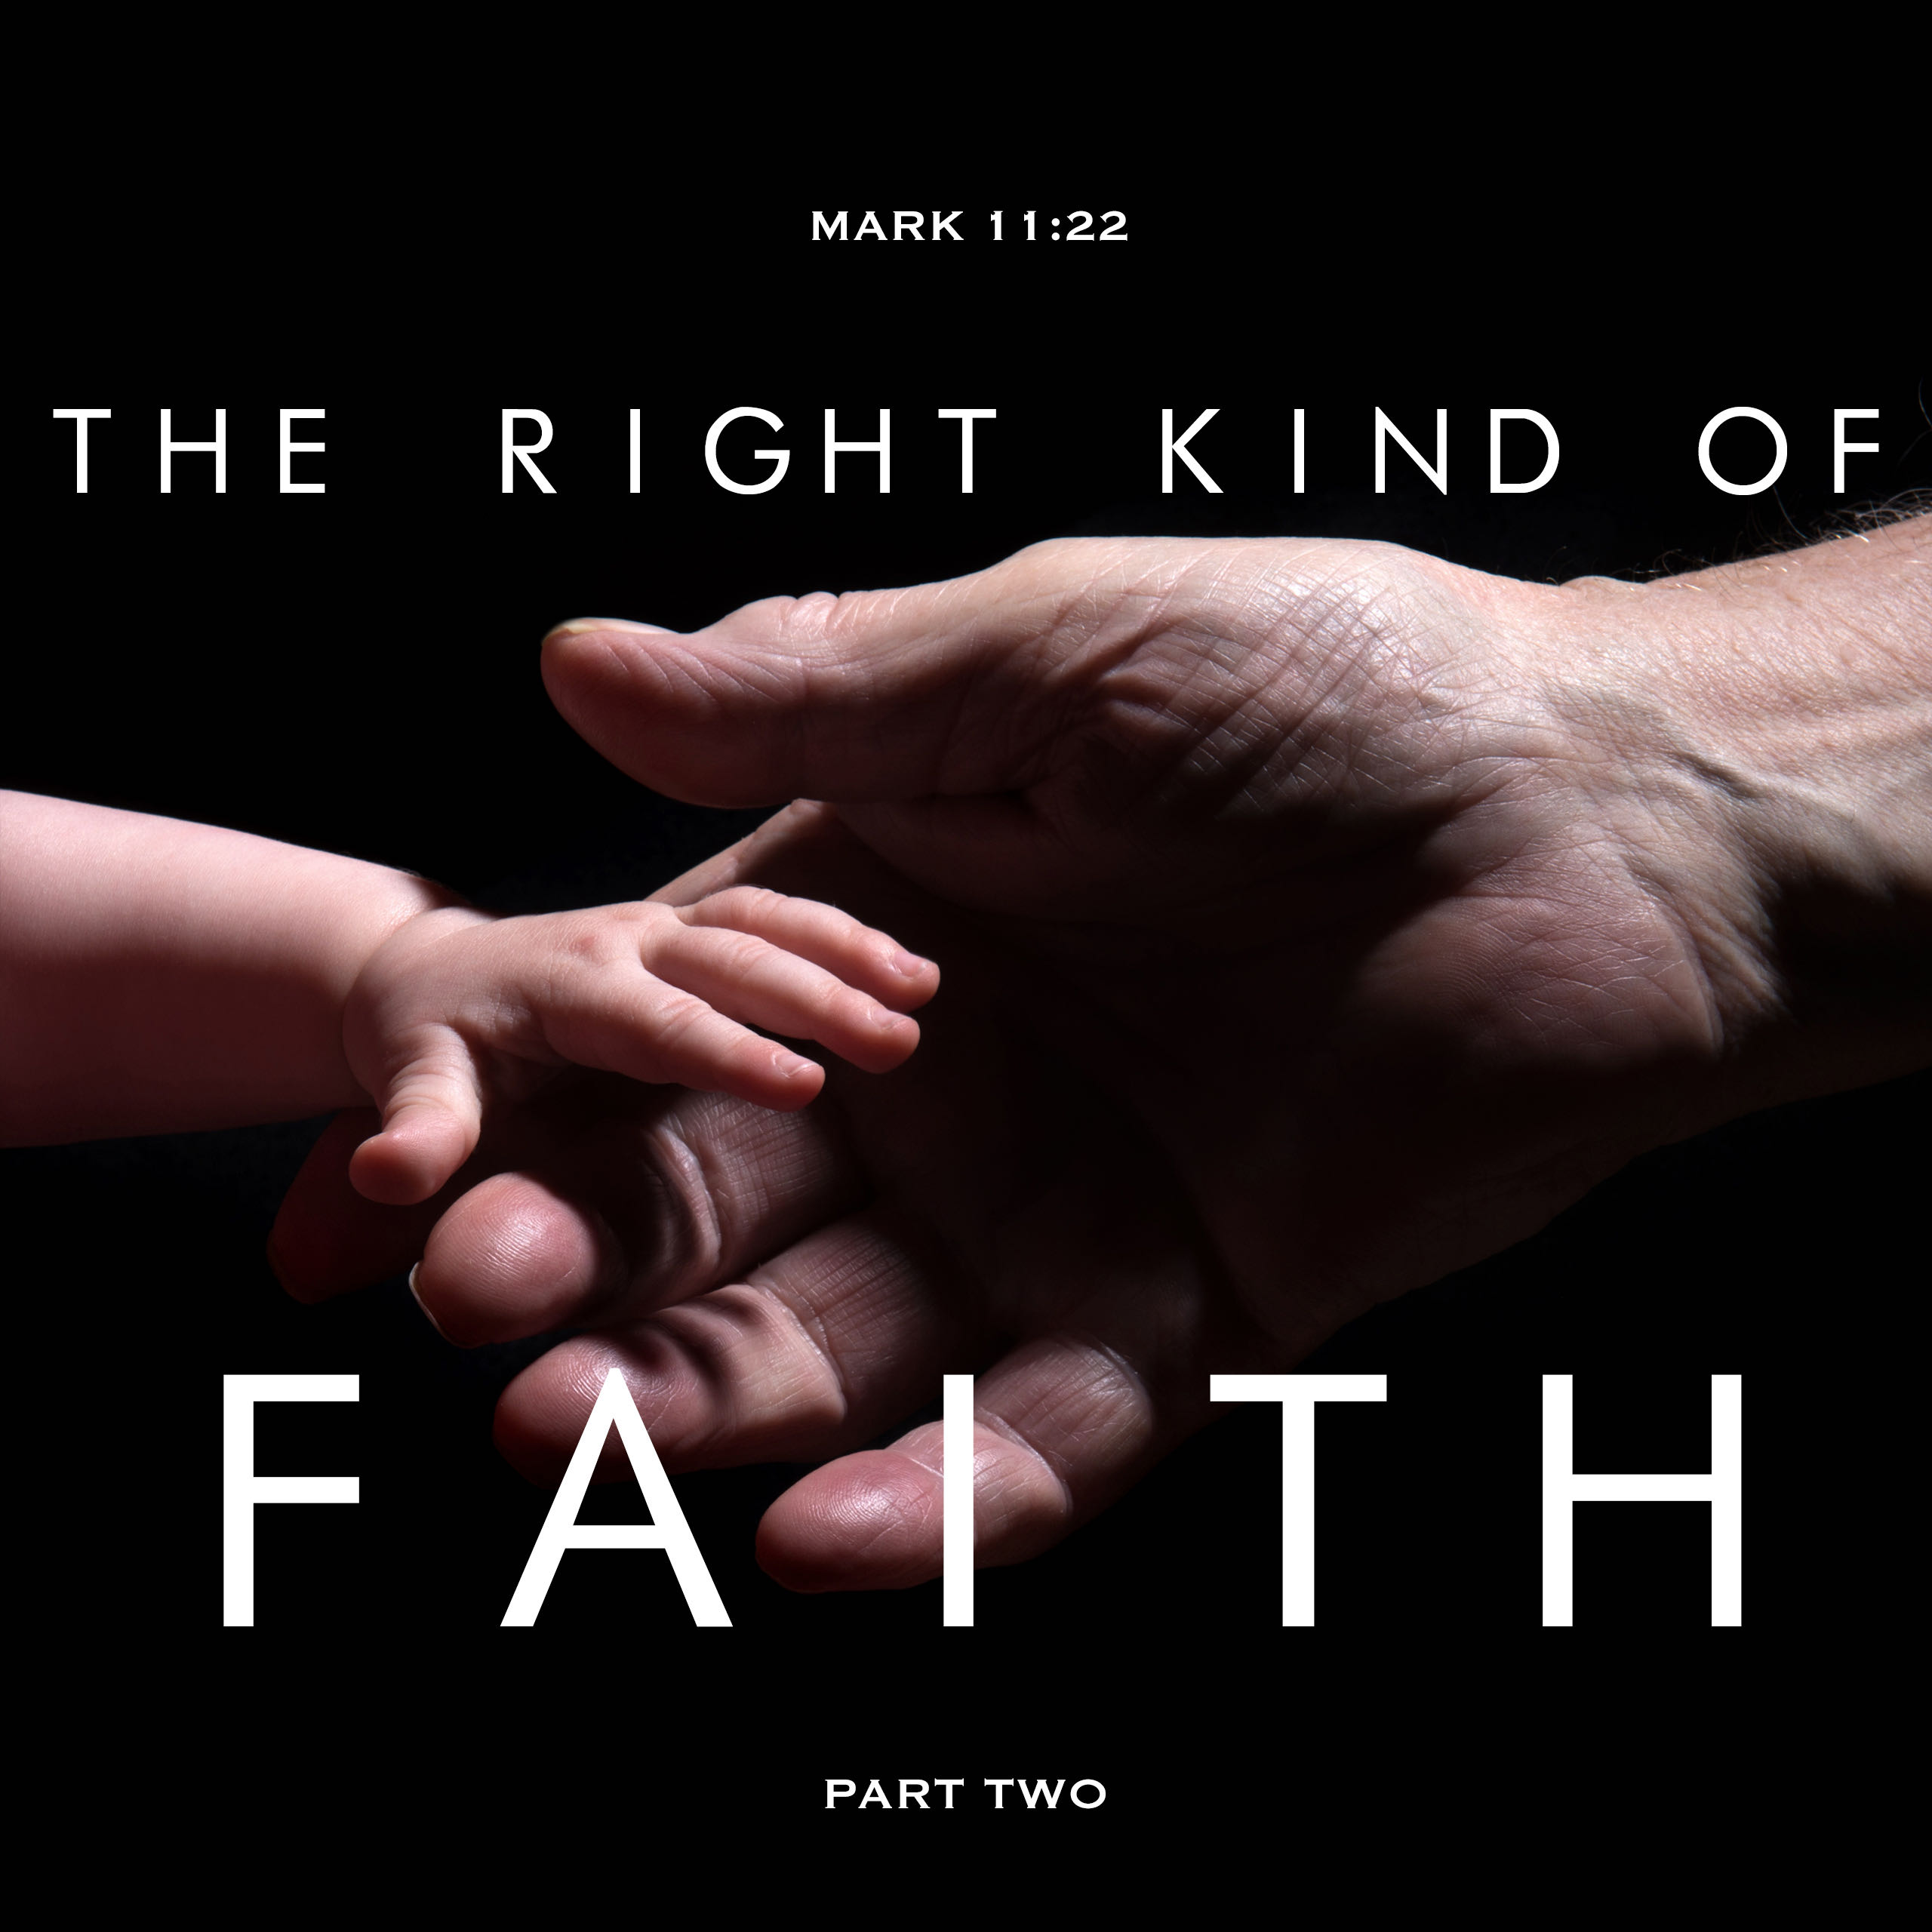 The Right Kind of Faith Part 2